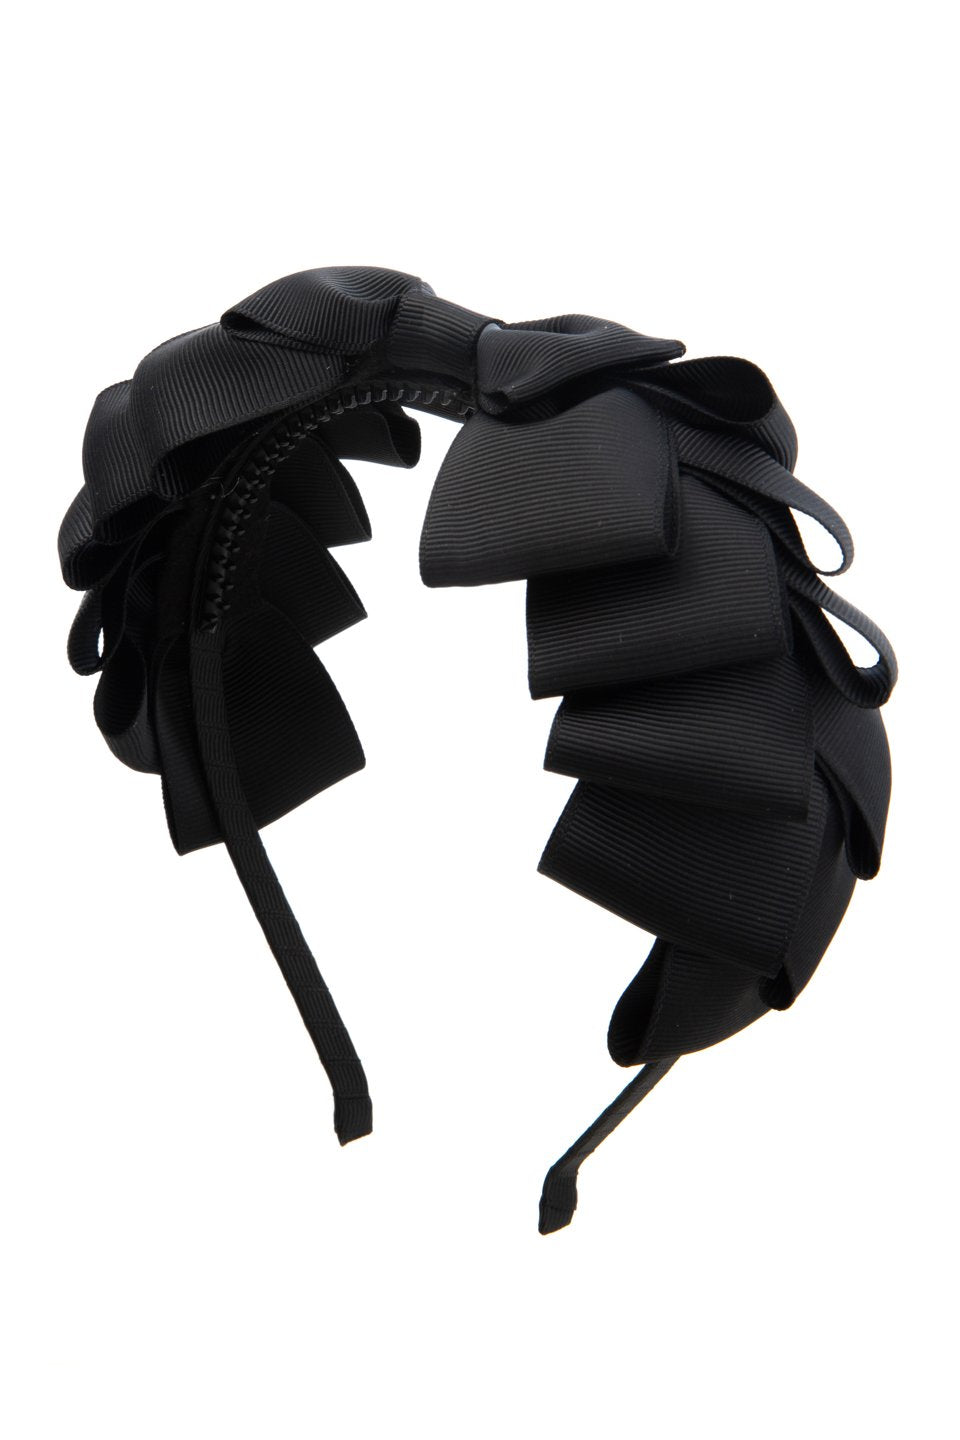 Pleated Ribbon Grosgrain Headband - Black - PROJECT 6, modest fashion